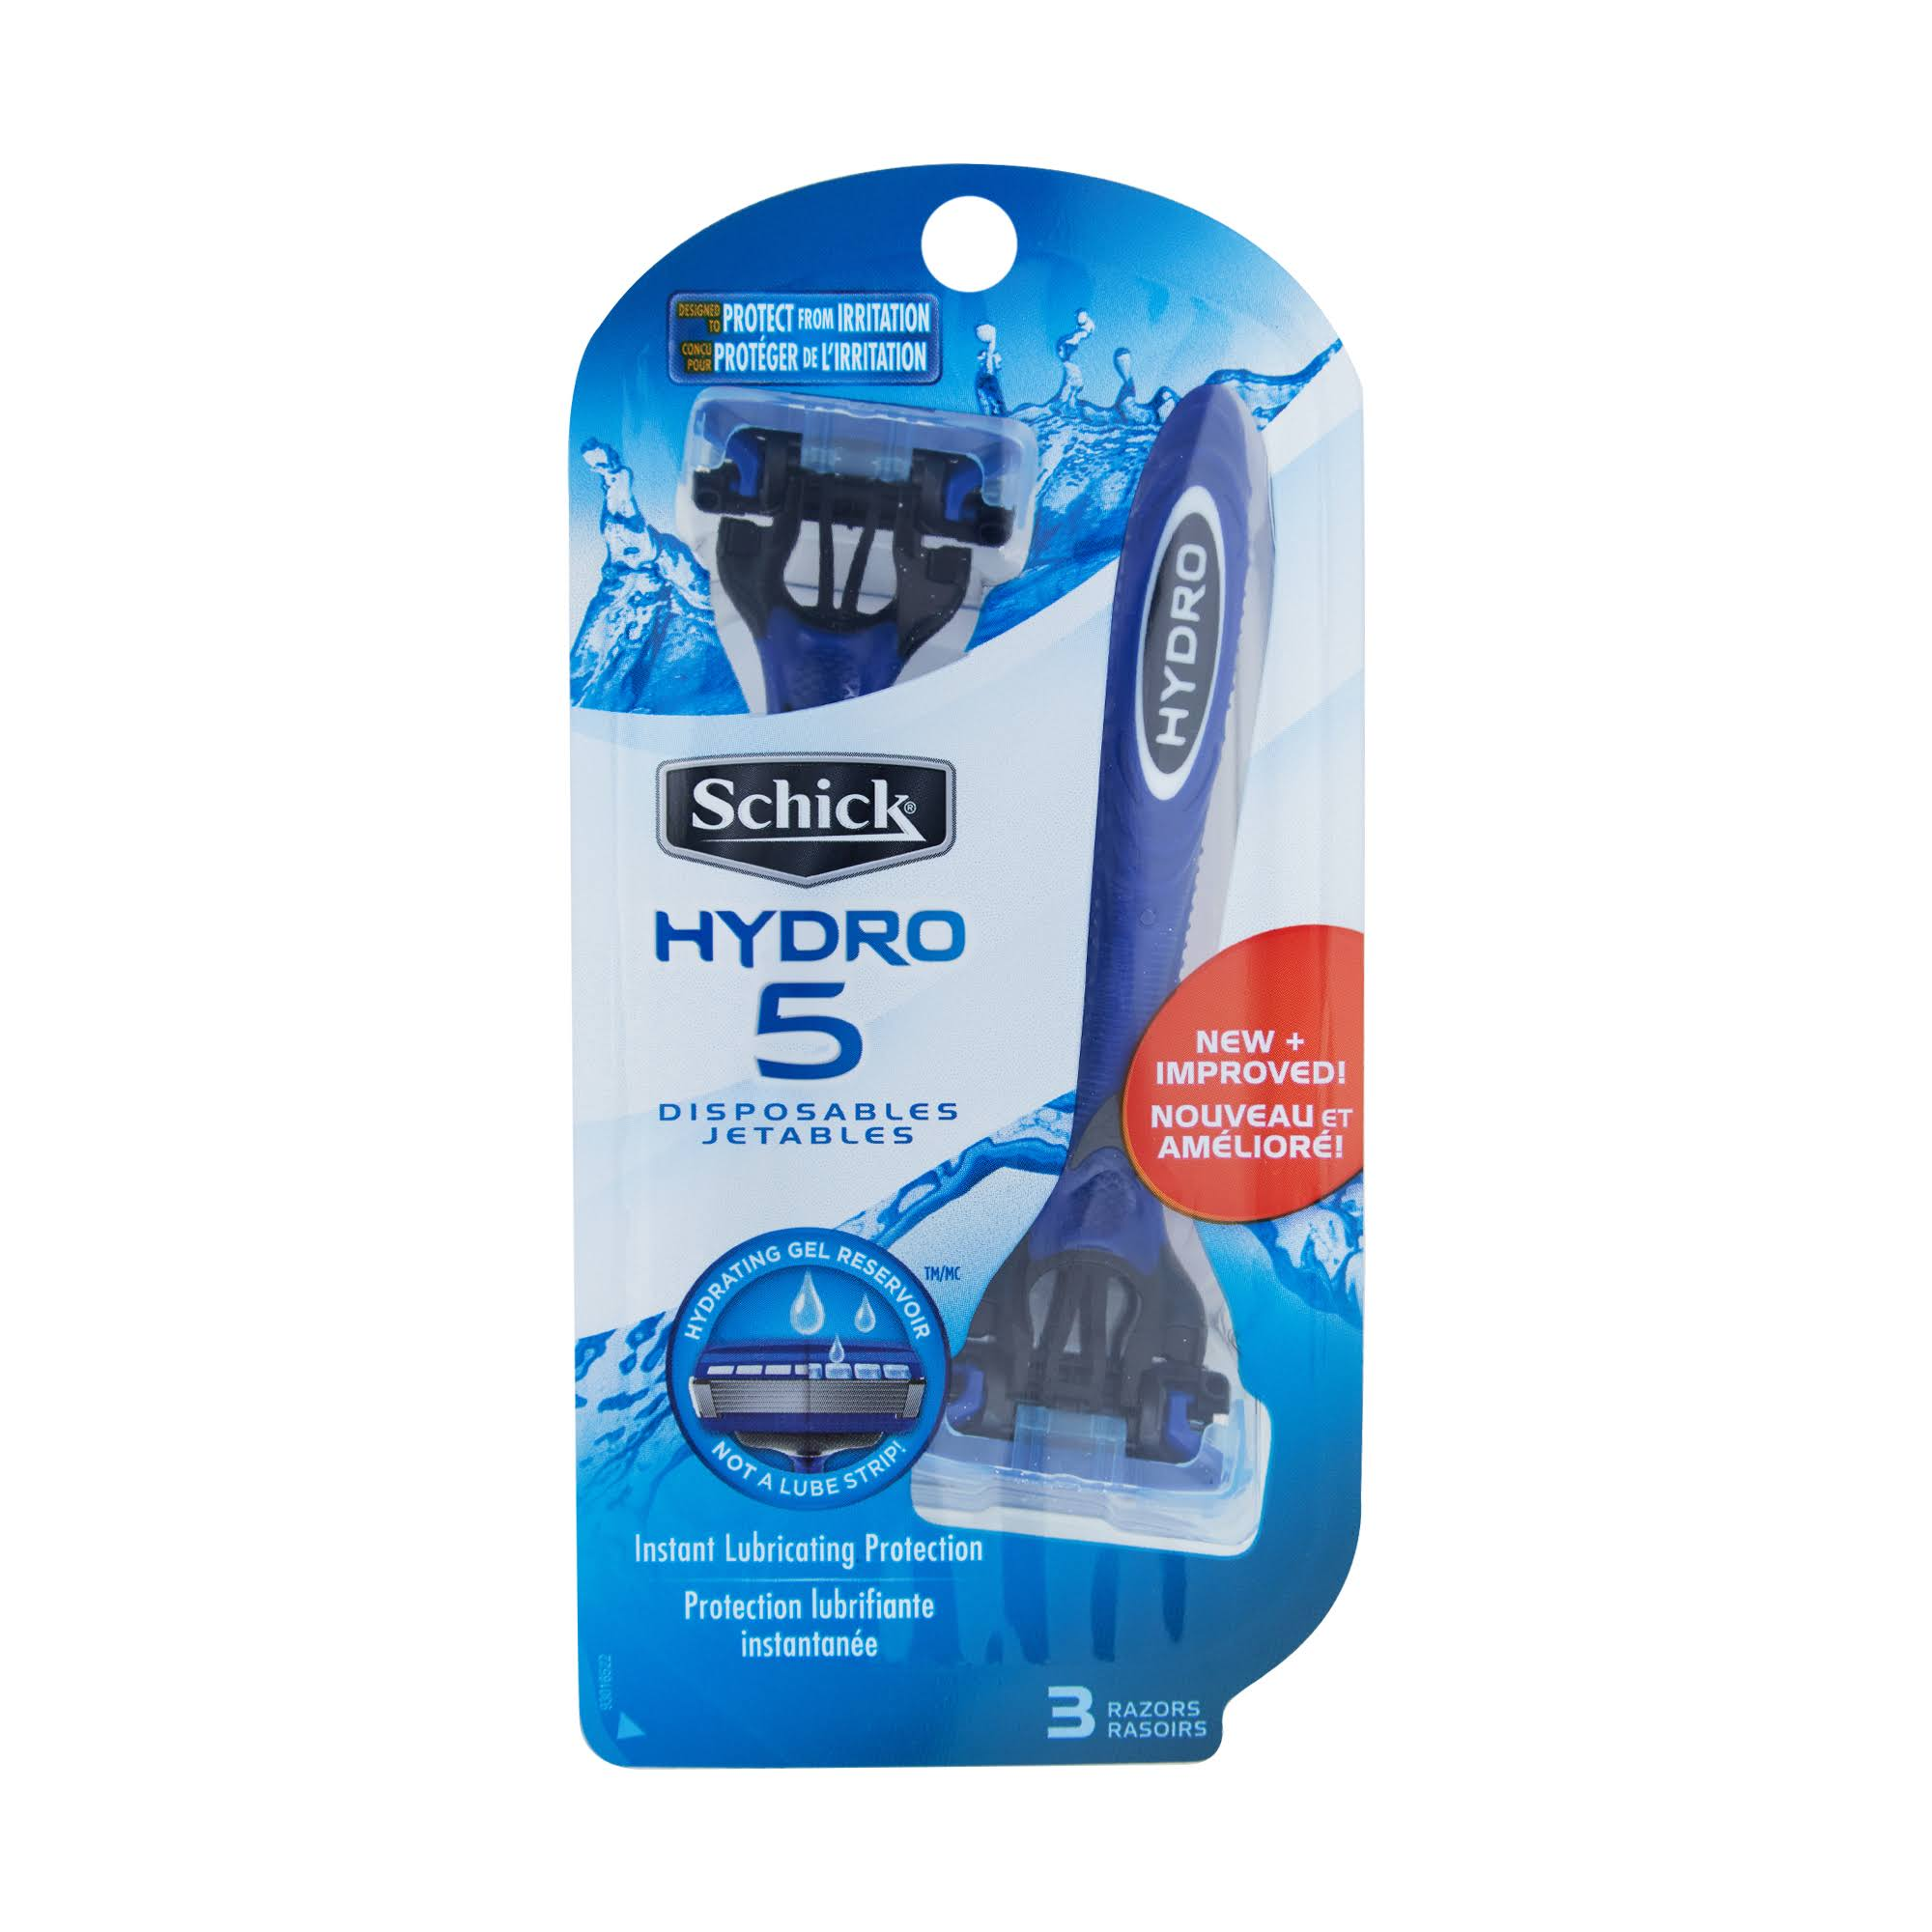 Schick Hydro 5 Men's Disposable Razor - 3 Pack